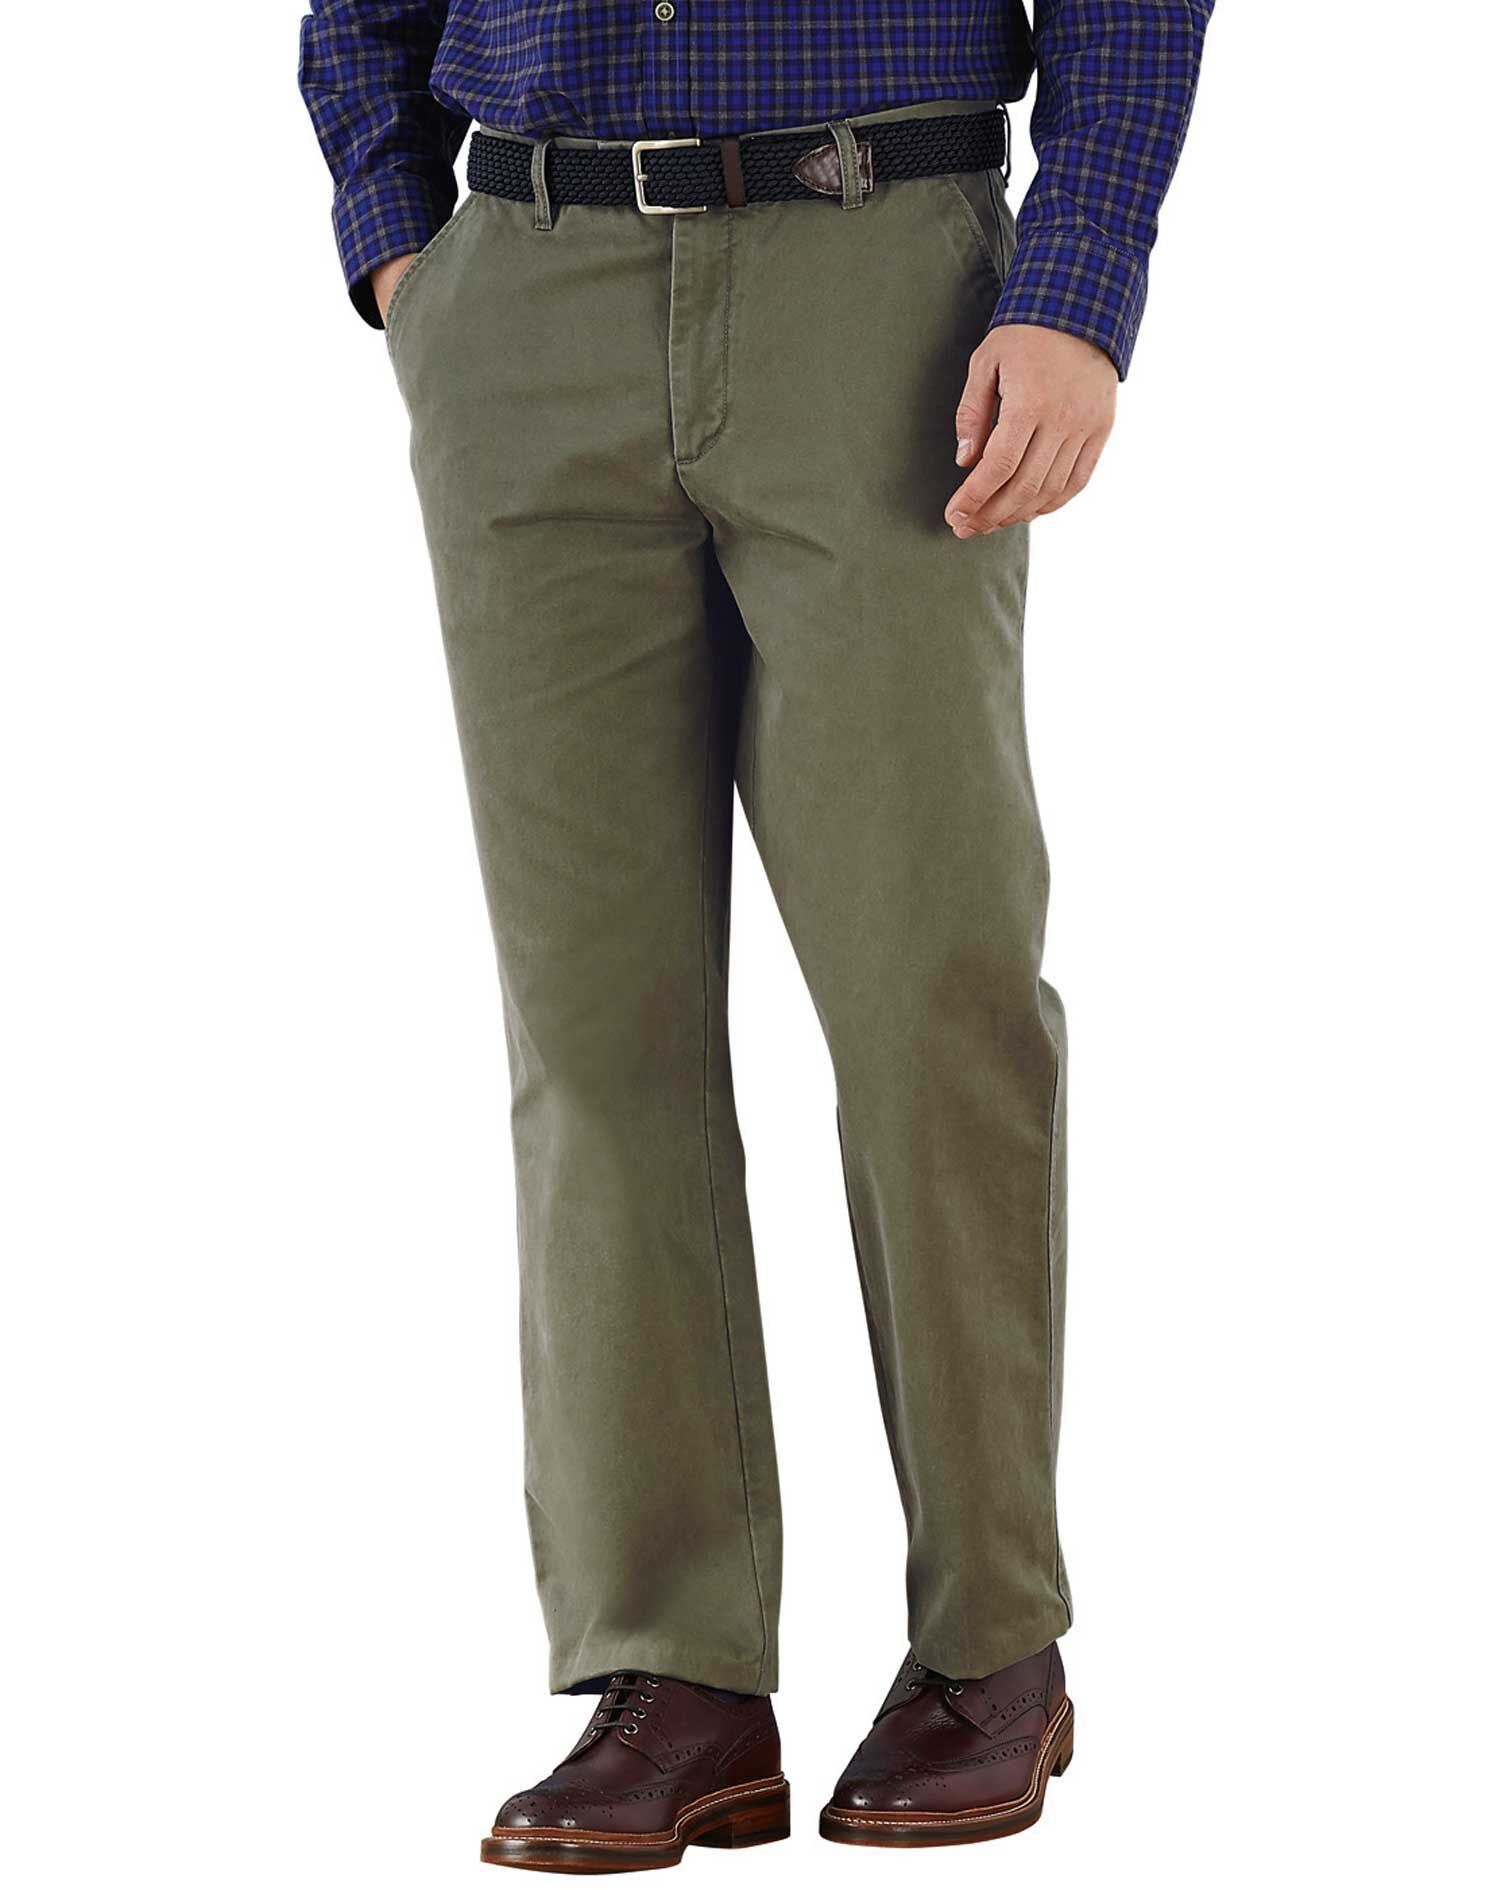 Olive Classic Fit Flat Front Cotton Chino Trousers Size W38 L34 by Charles Tyrwhitt